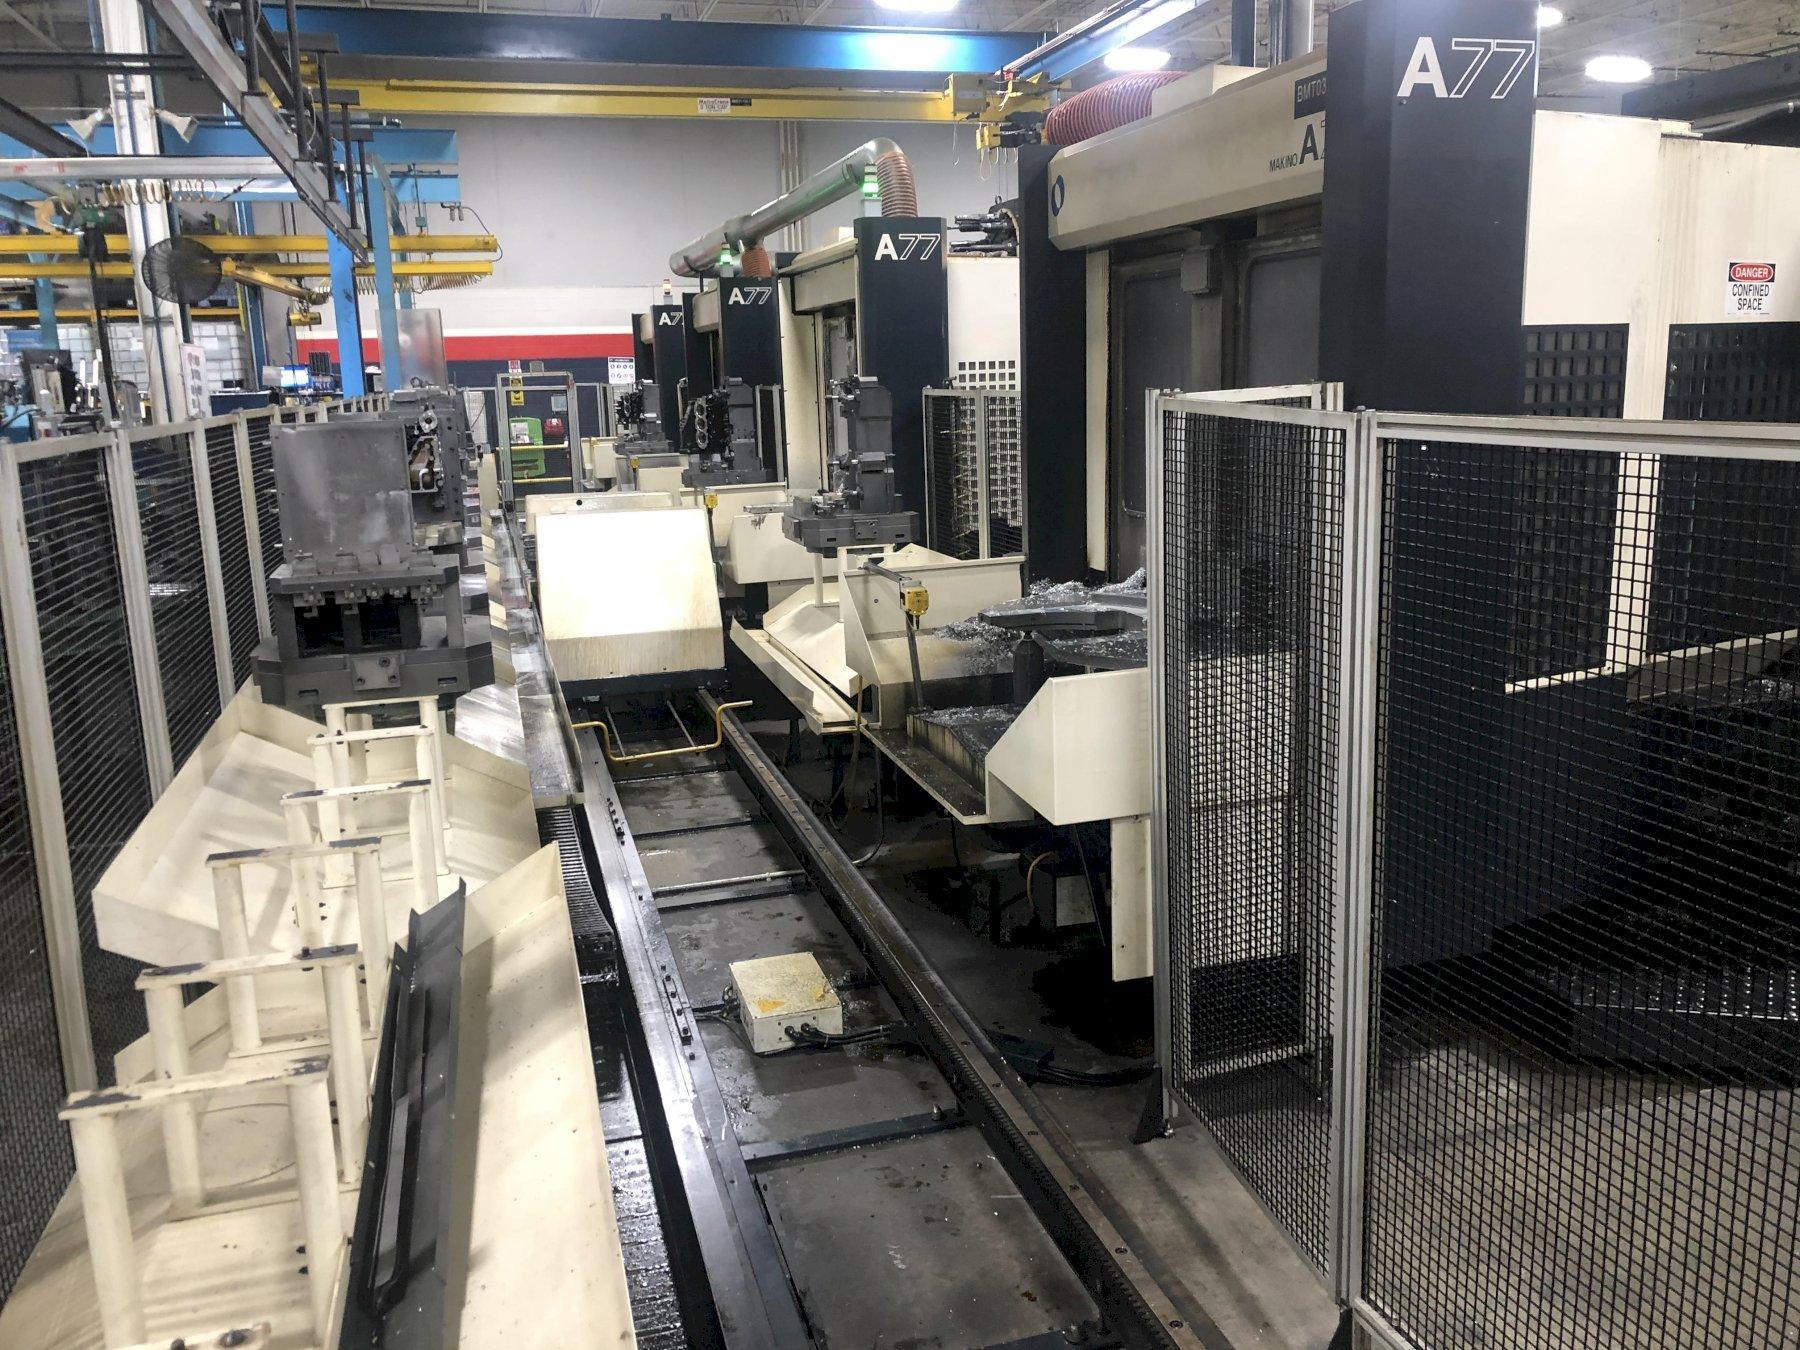 Makino A77 Horizontal Machining Center